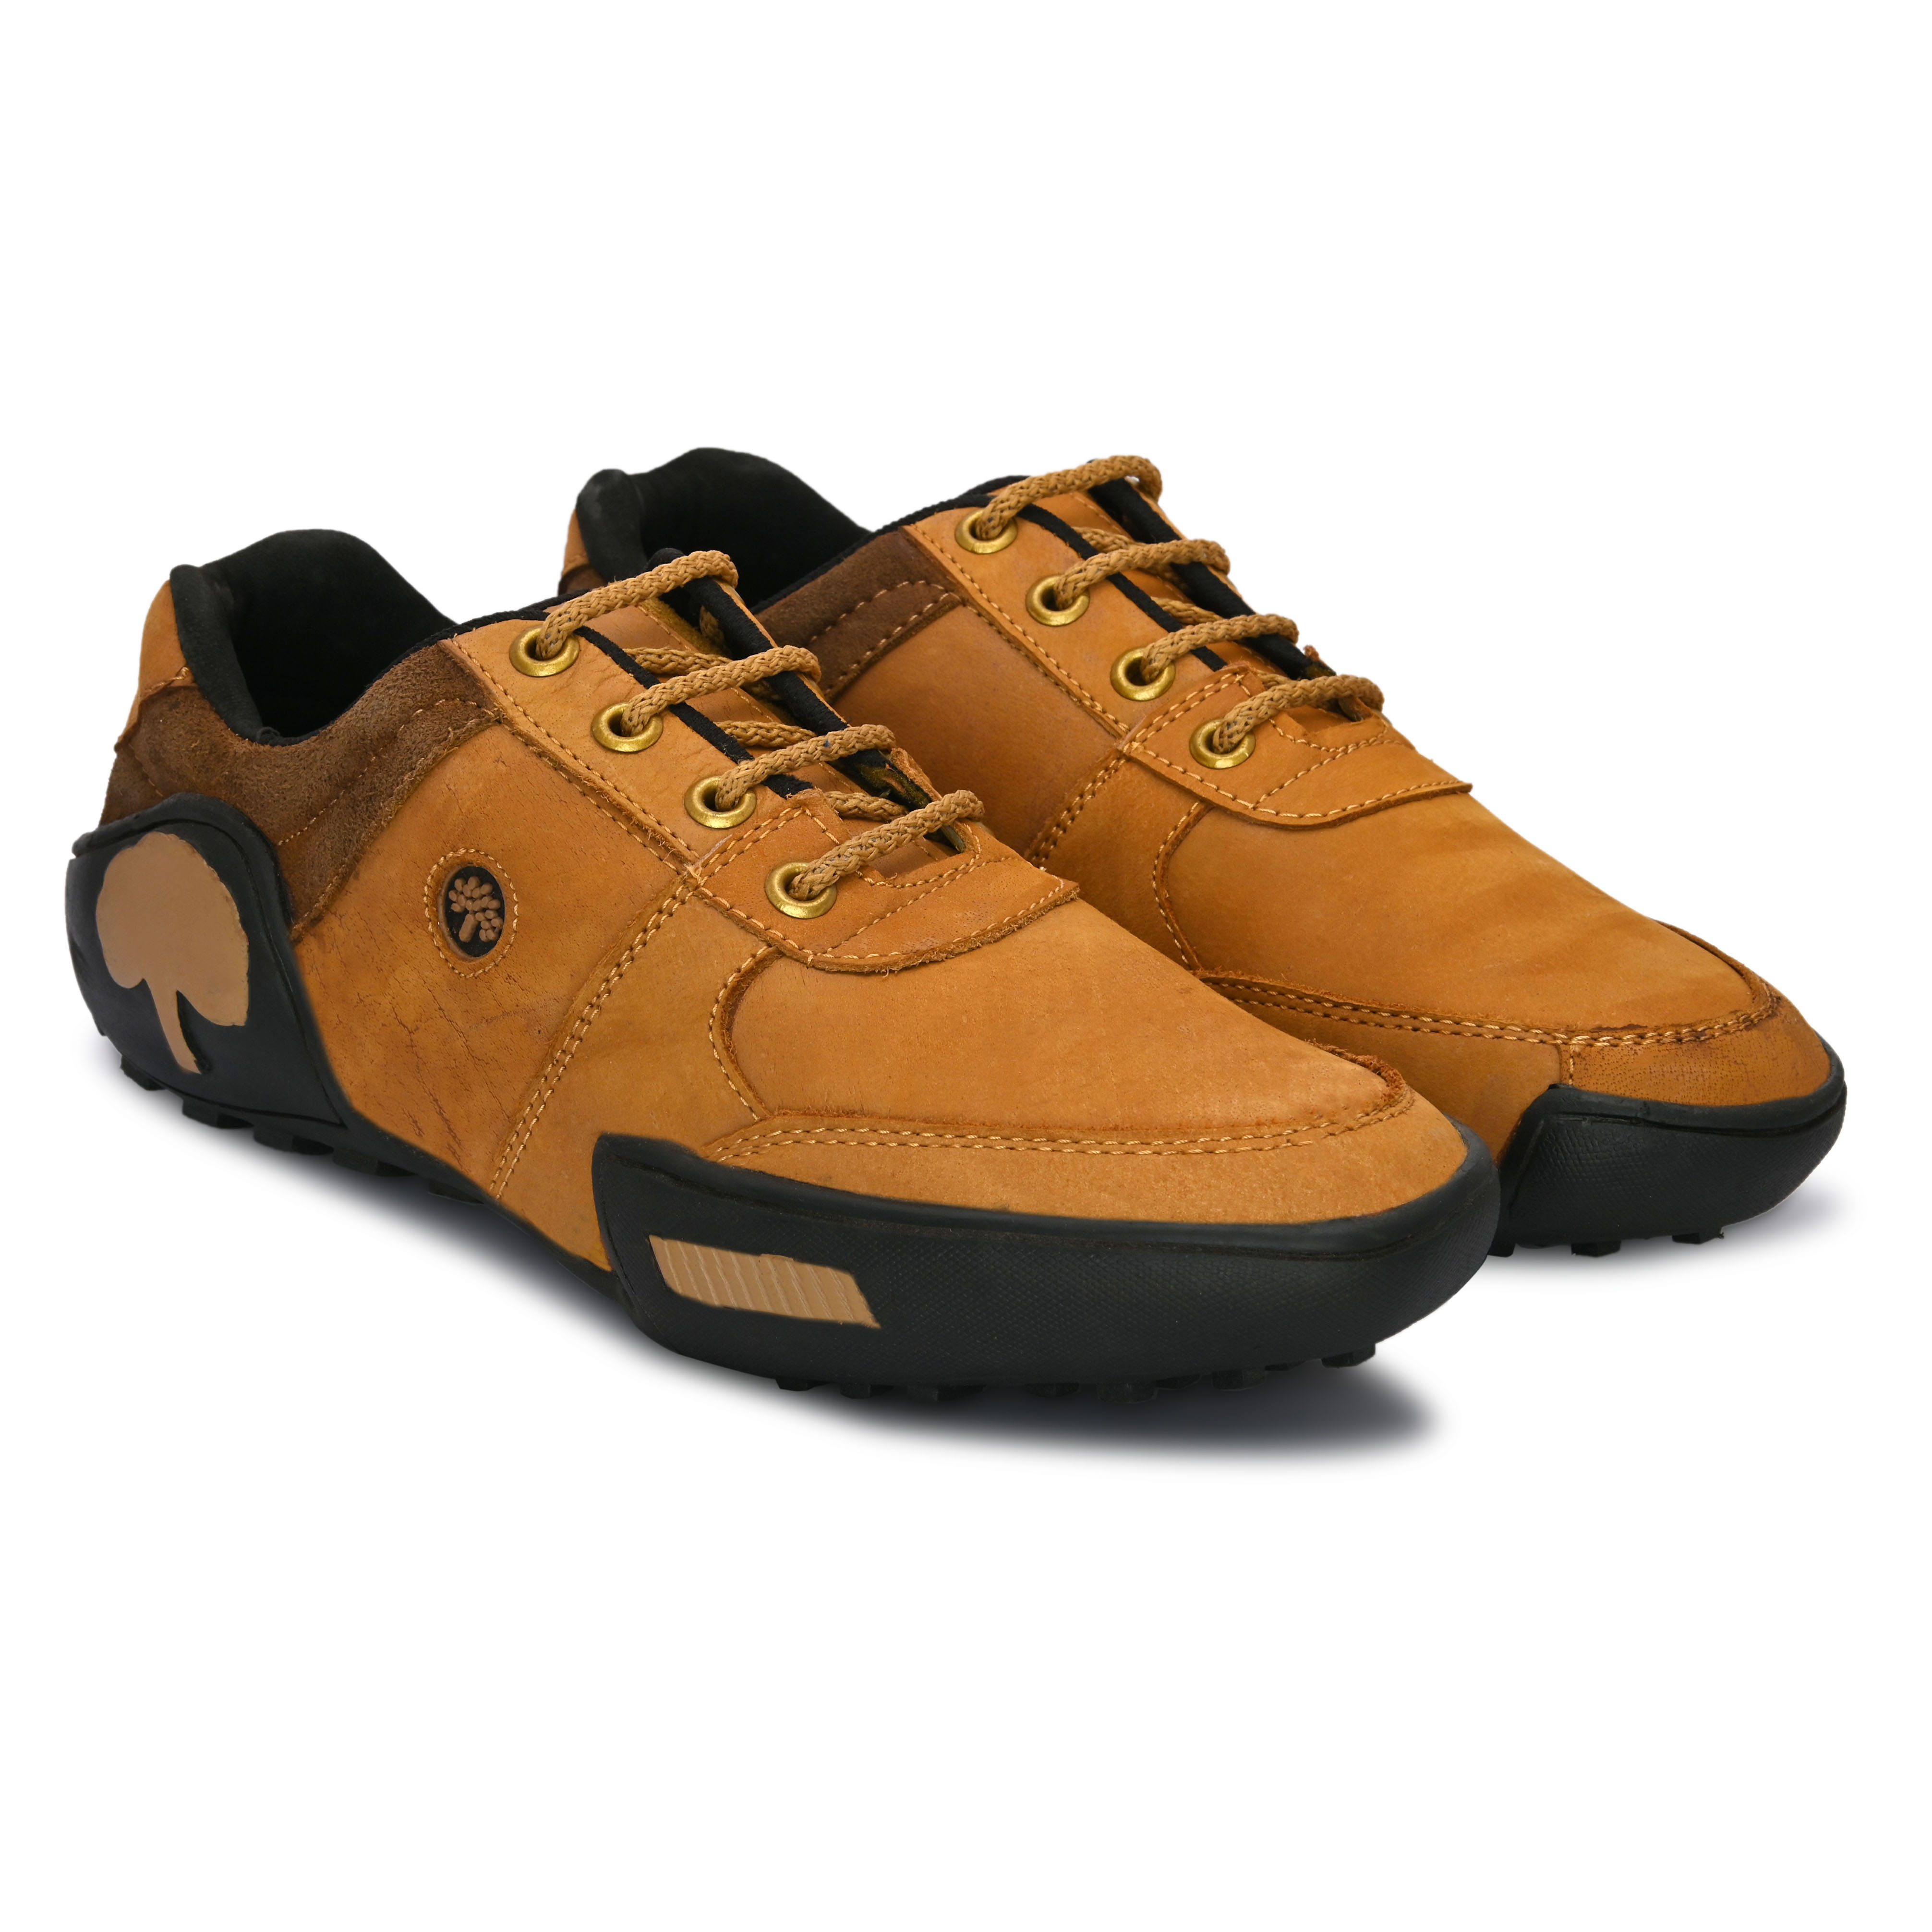 BRIFAR COMFORTABLE & TRENDY FULL LEATHER CASUAL SHOES ARE RELIABLE FOR ANY BFLT011TAN (TAN, 6-9, PAIR'S)